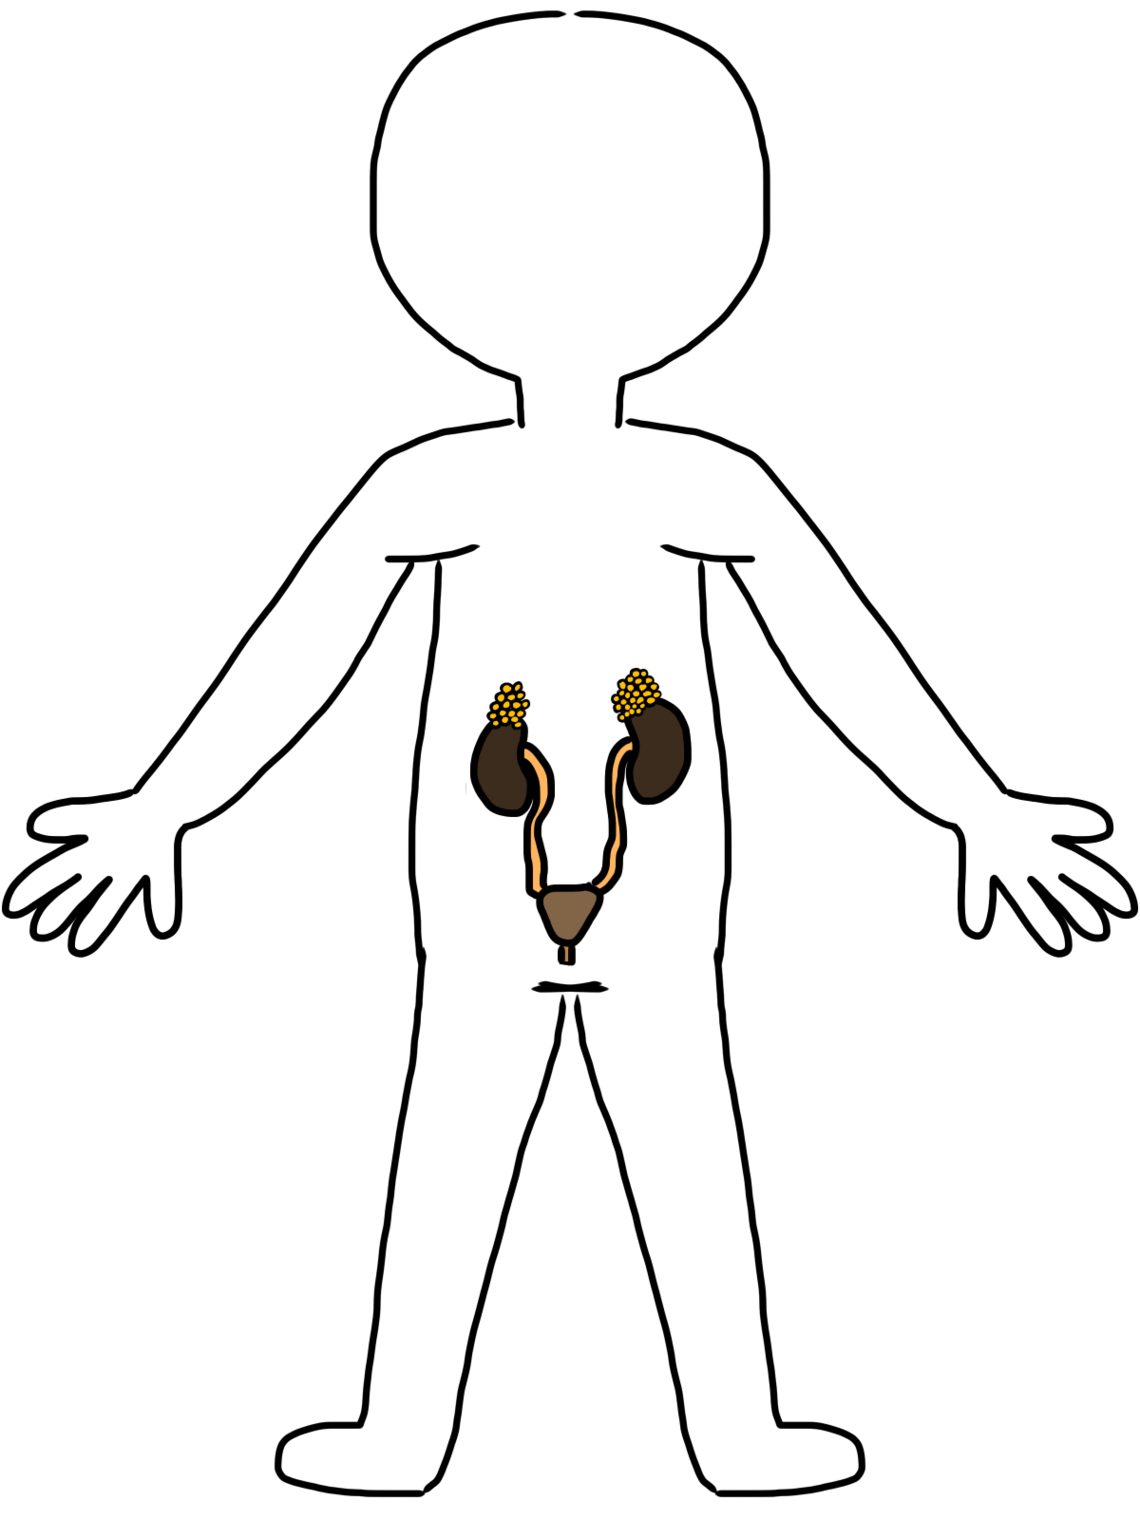 Body Systems Clipart